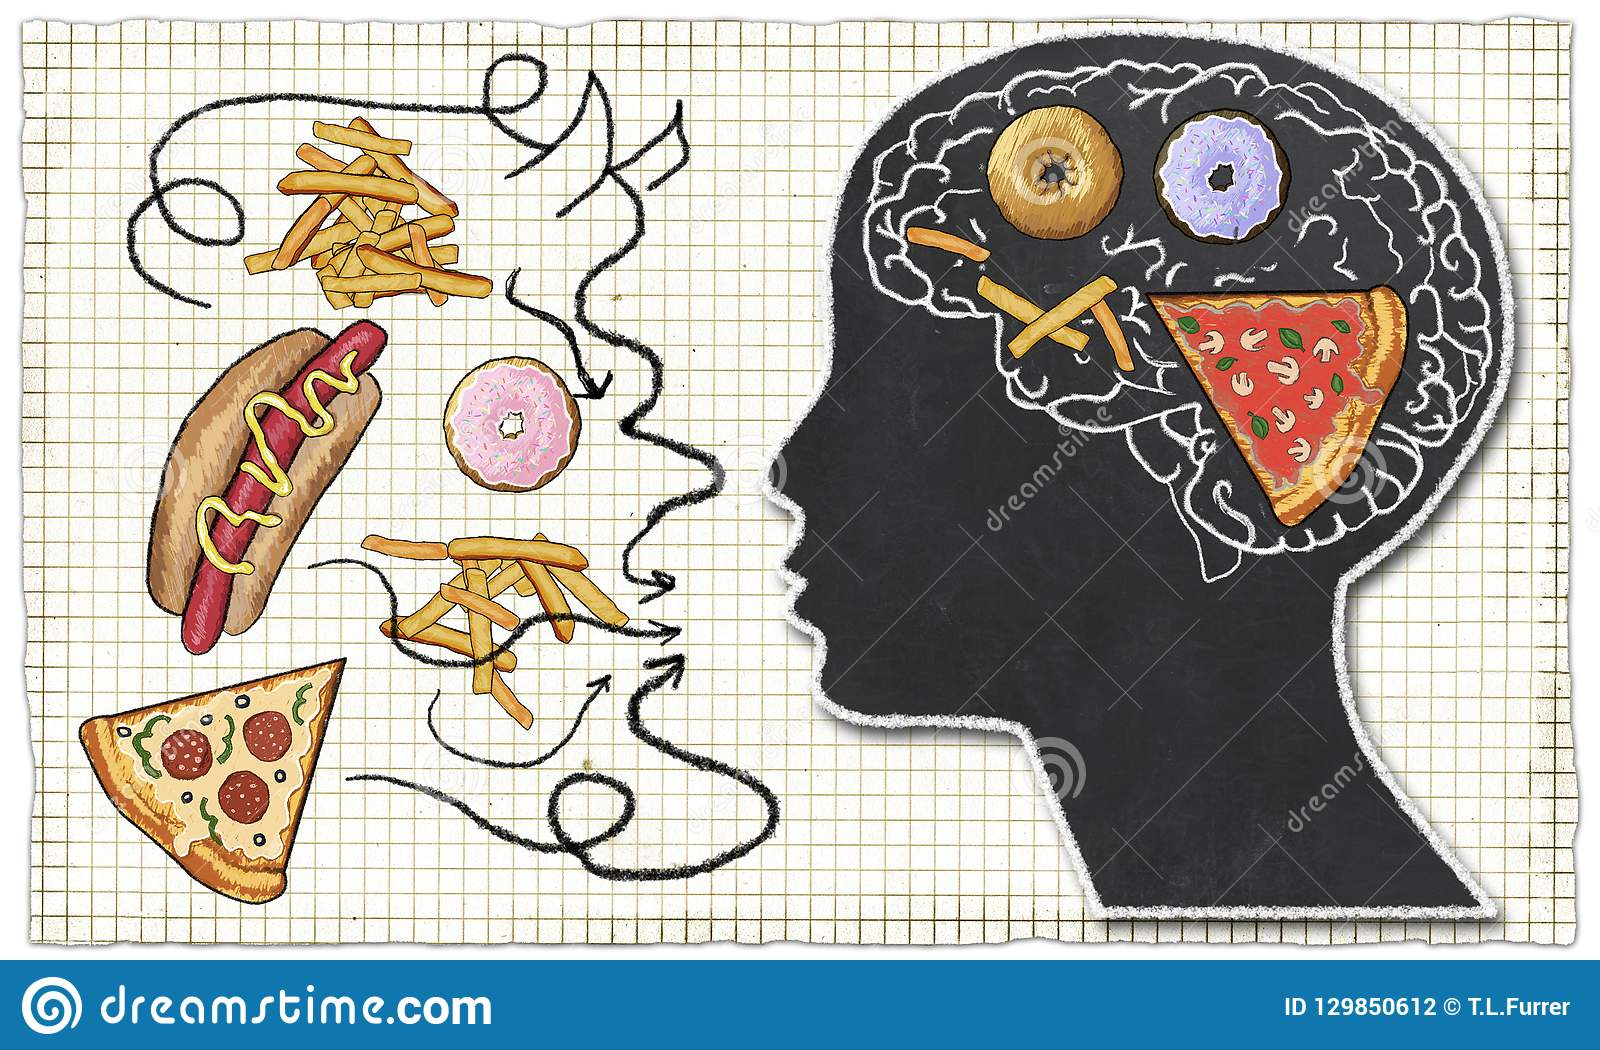 Addiction illustrated with Fast Food and Brain